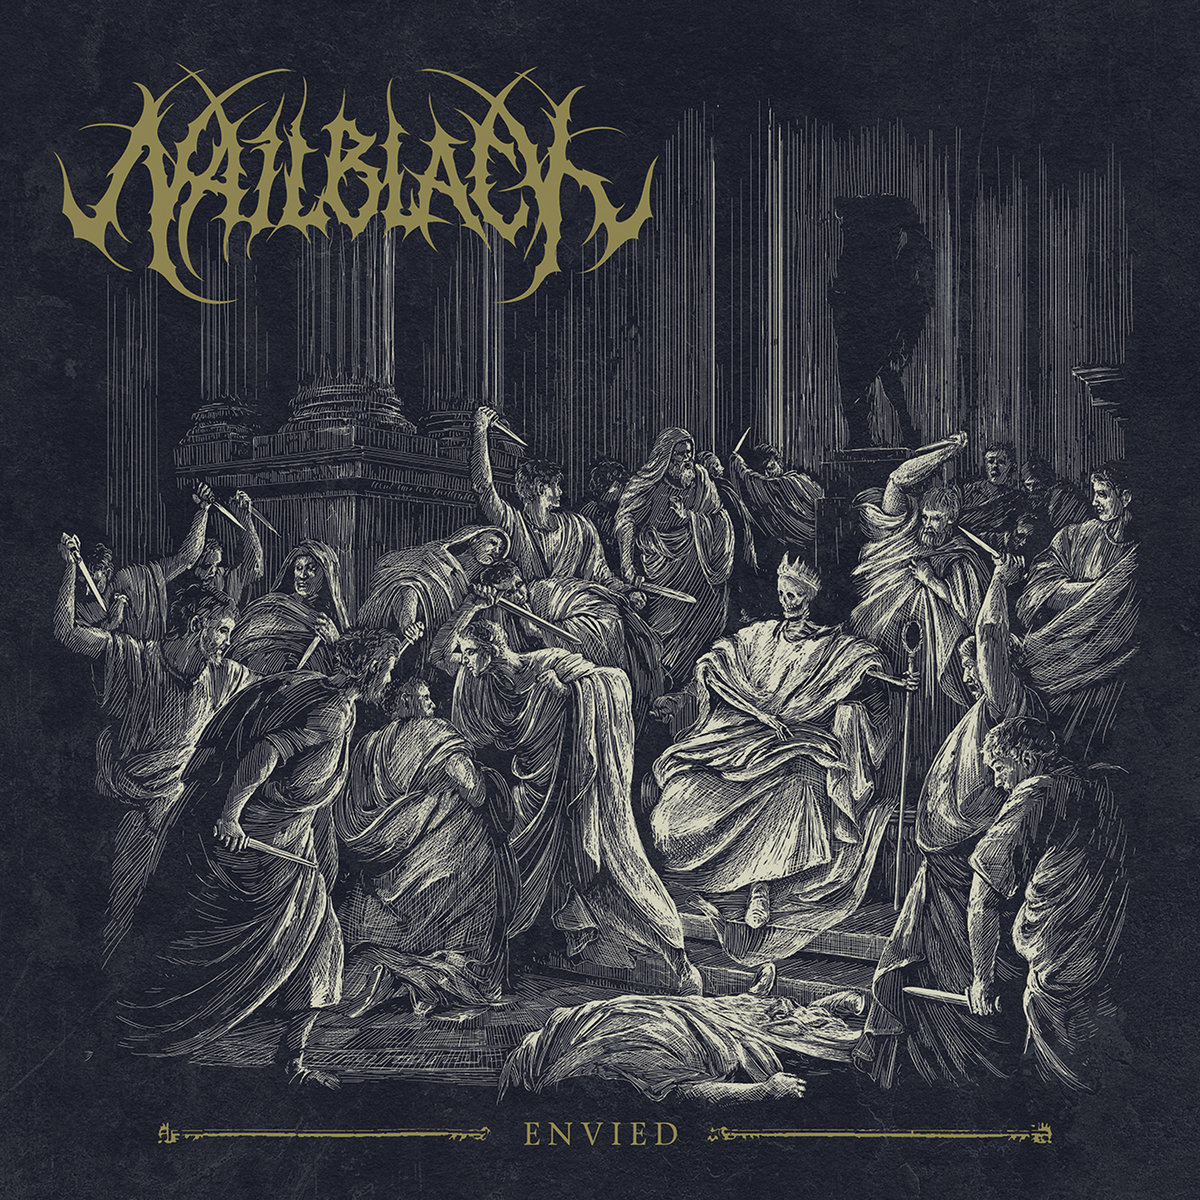 Nailblack – Envied Album Review